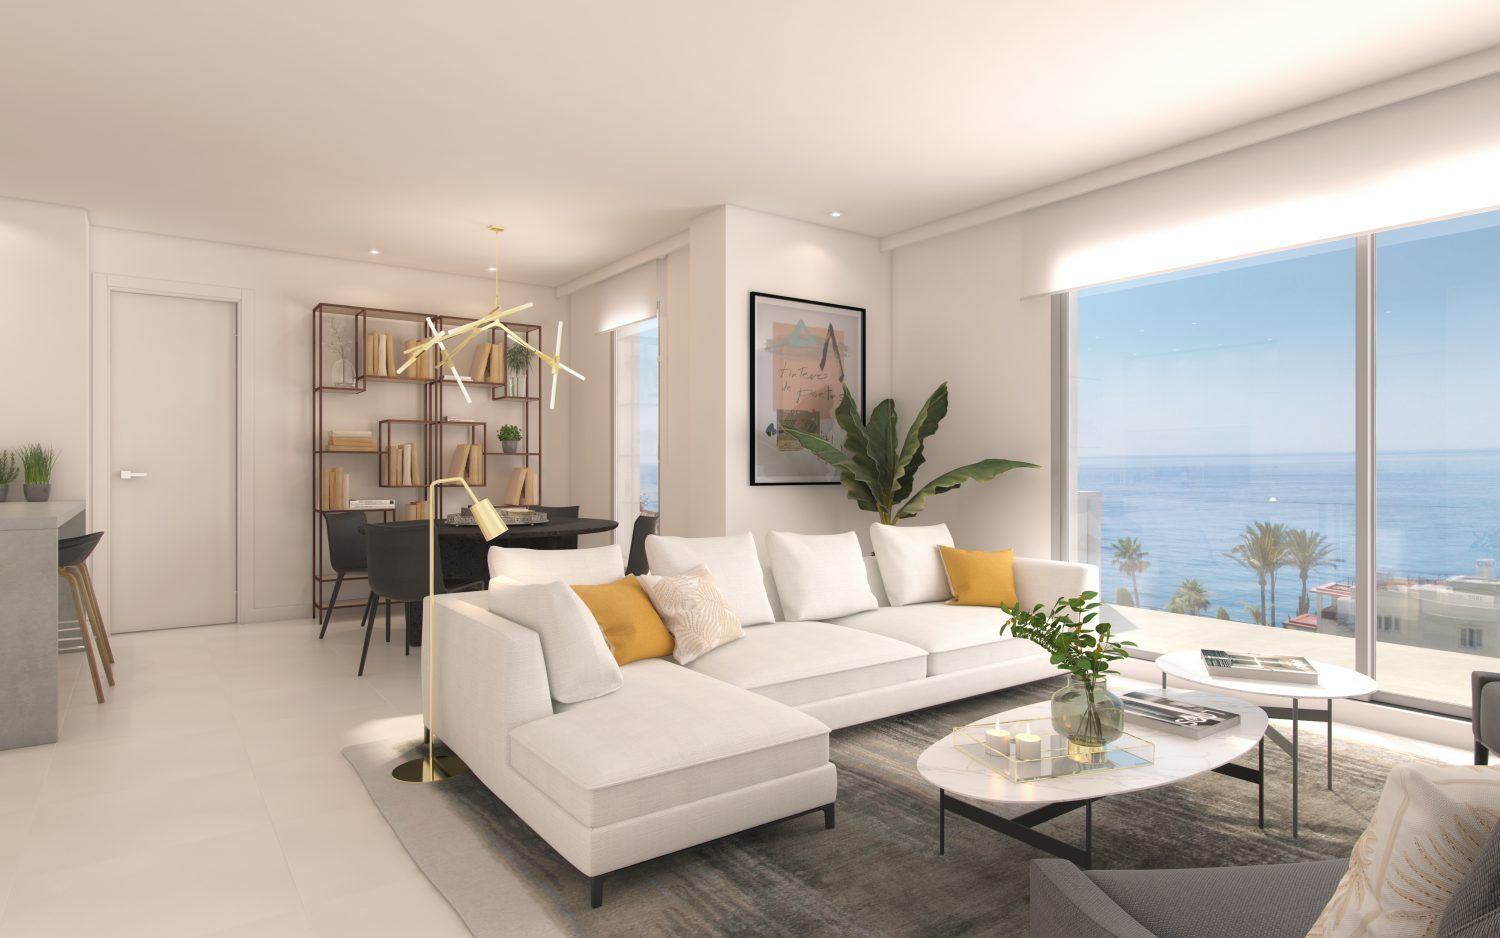 a view of luxury real estate agents in costa del sol